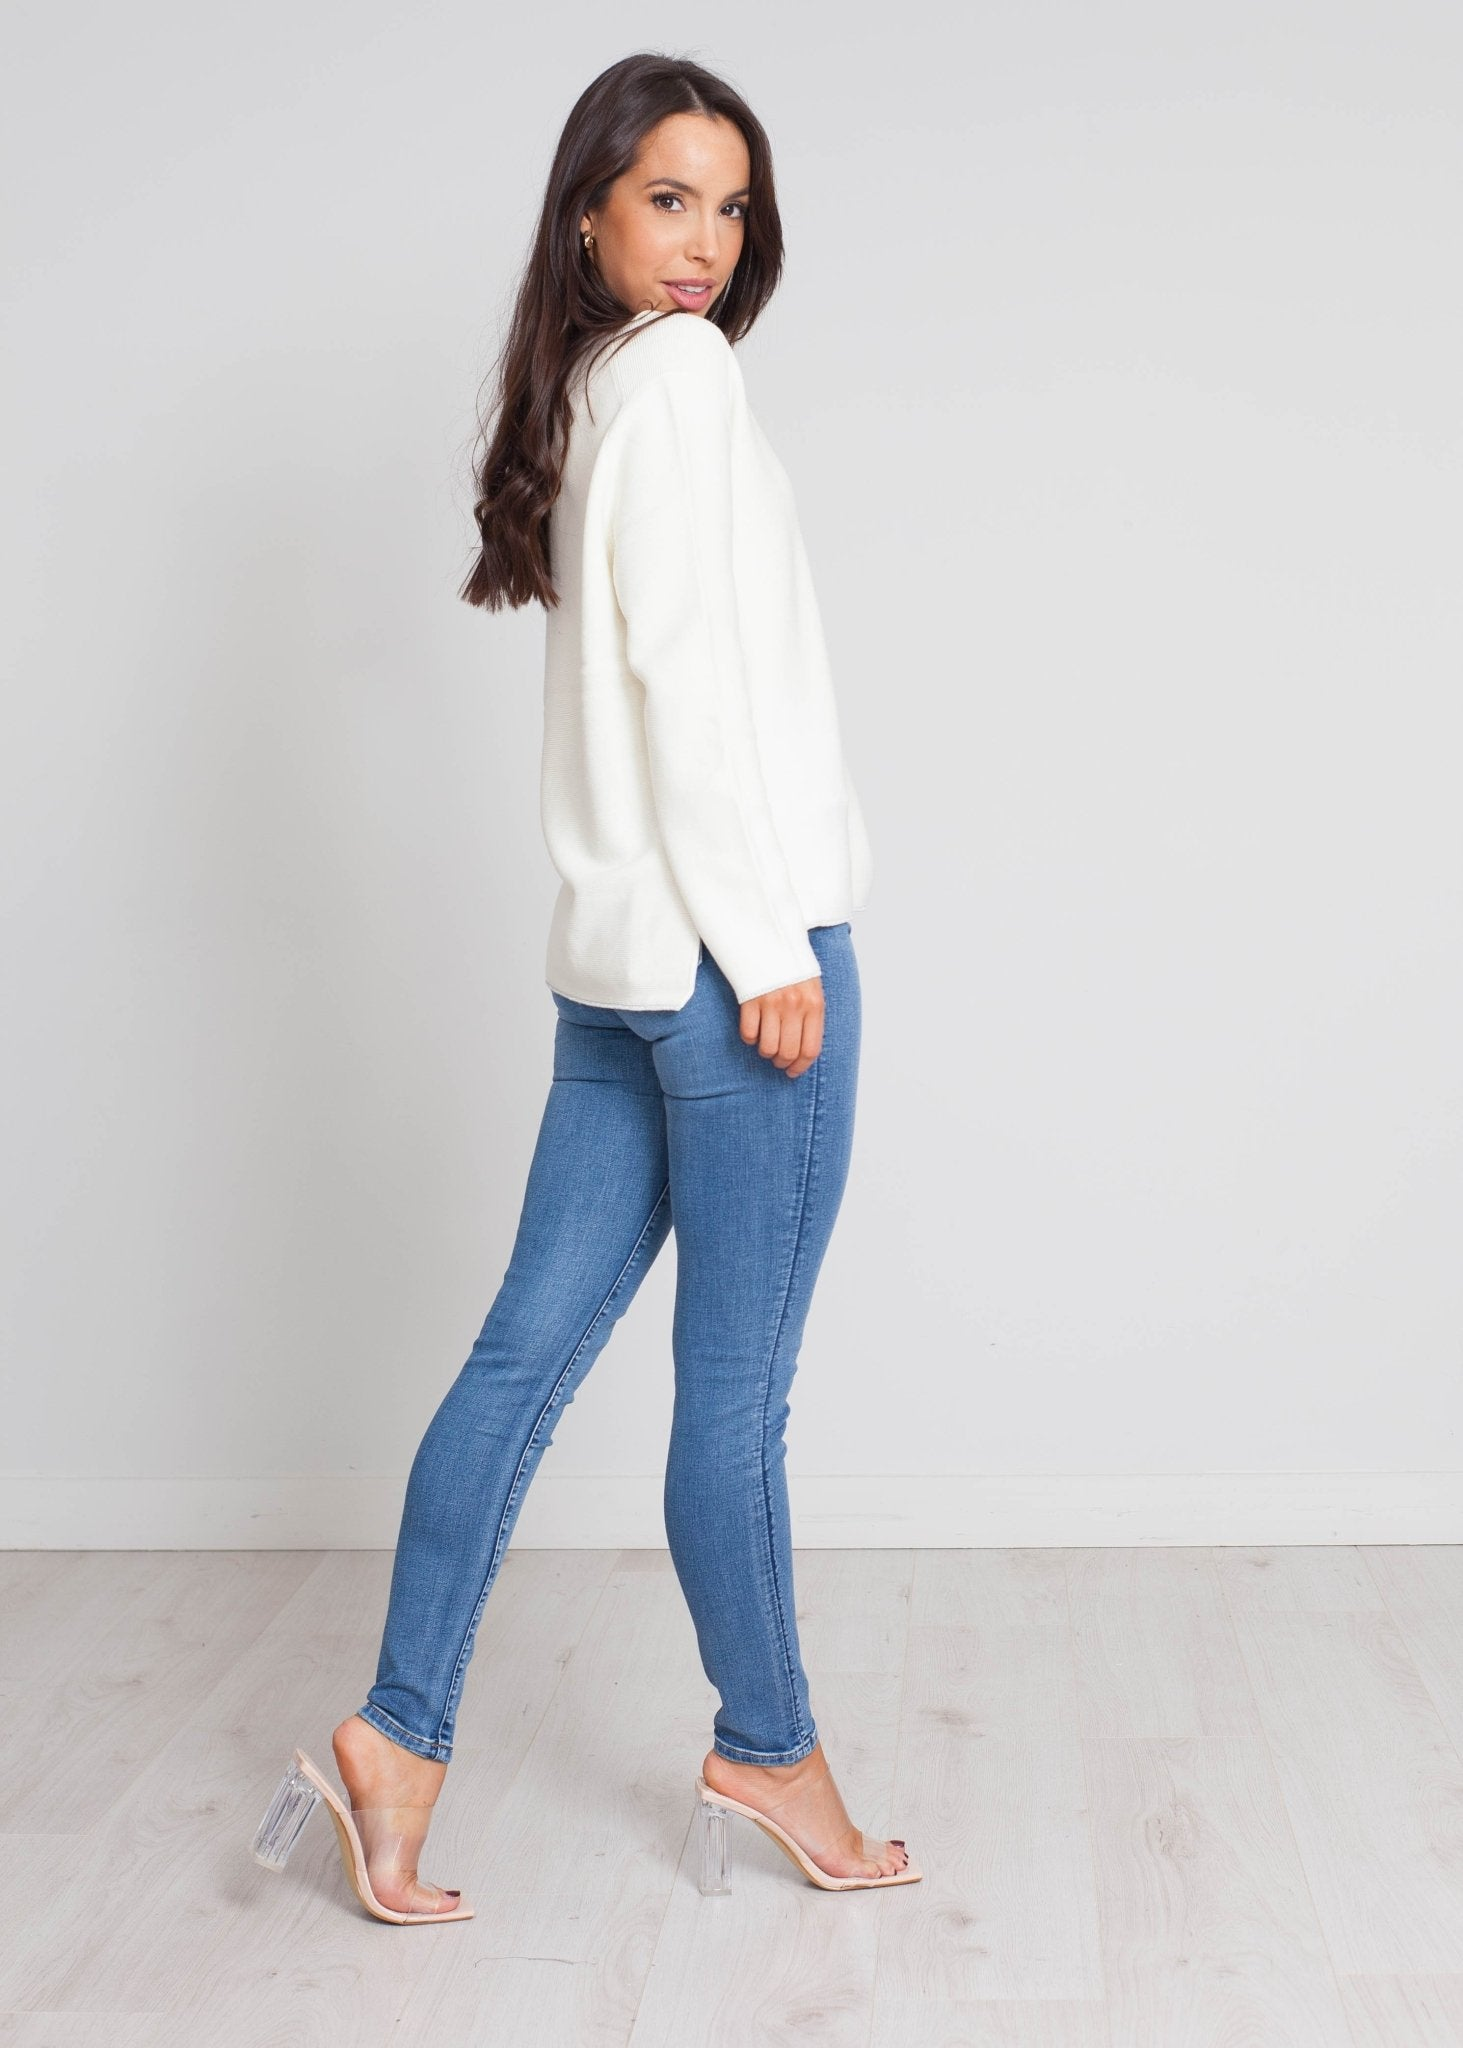 Darcey V-Neck Jumper In Cream - The Walk in Wardrobe